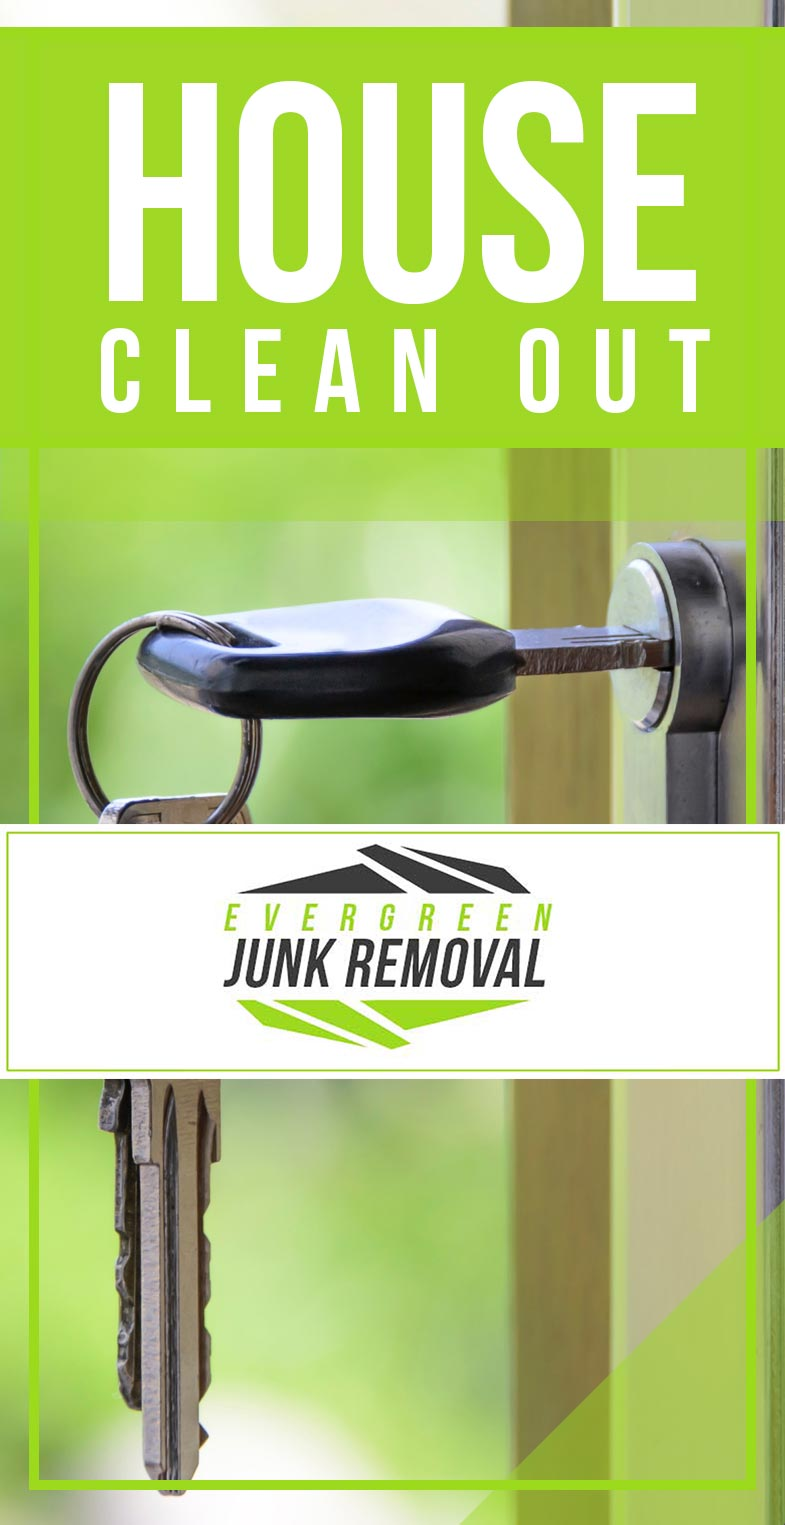 Junk Removal Lauderhill House Clean Out